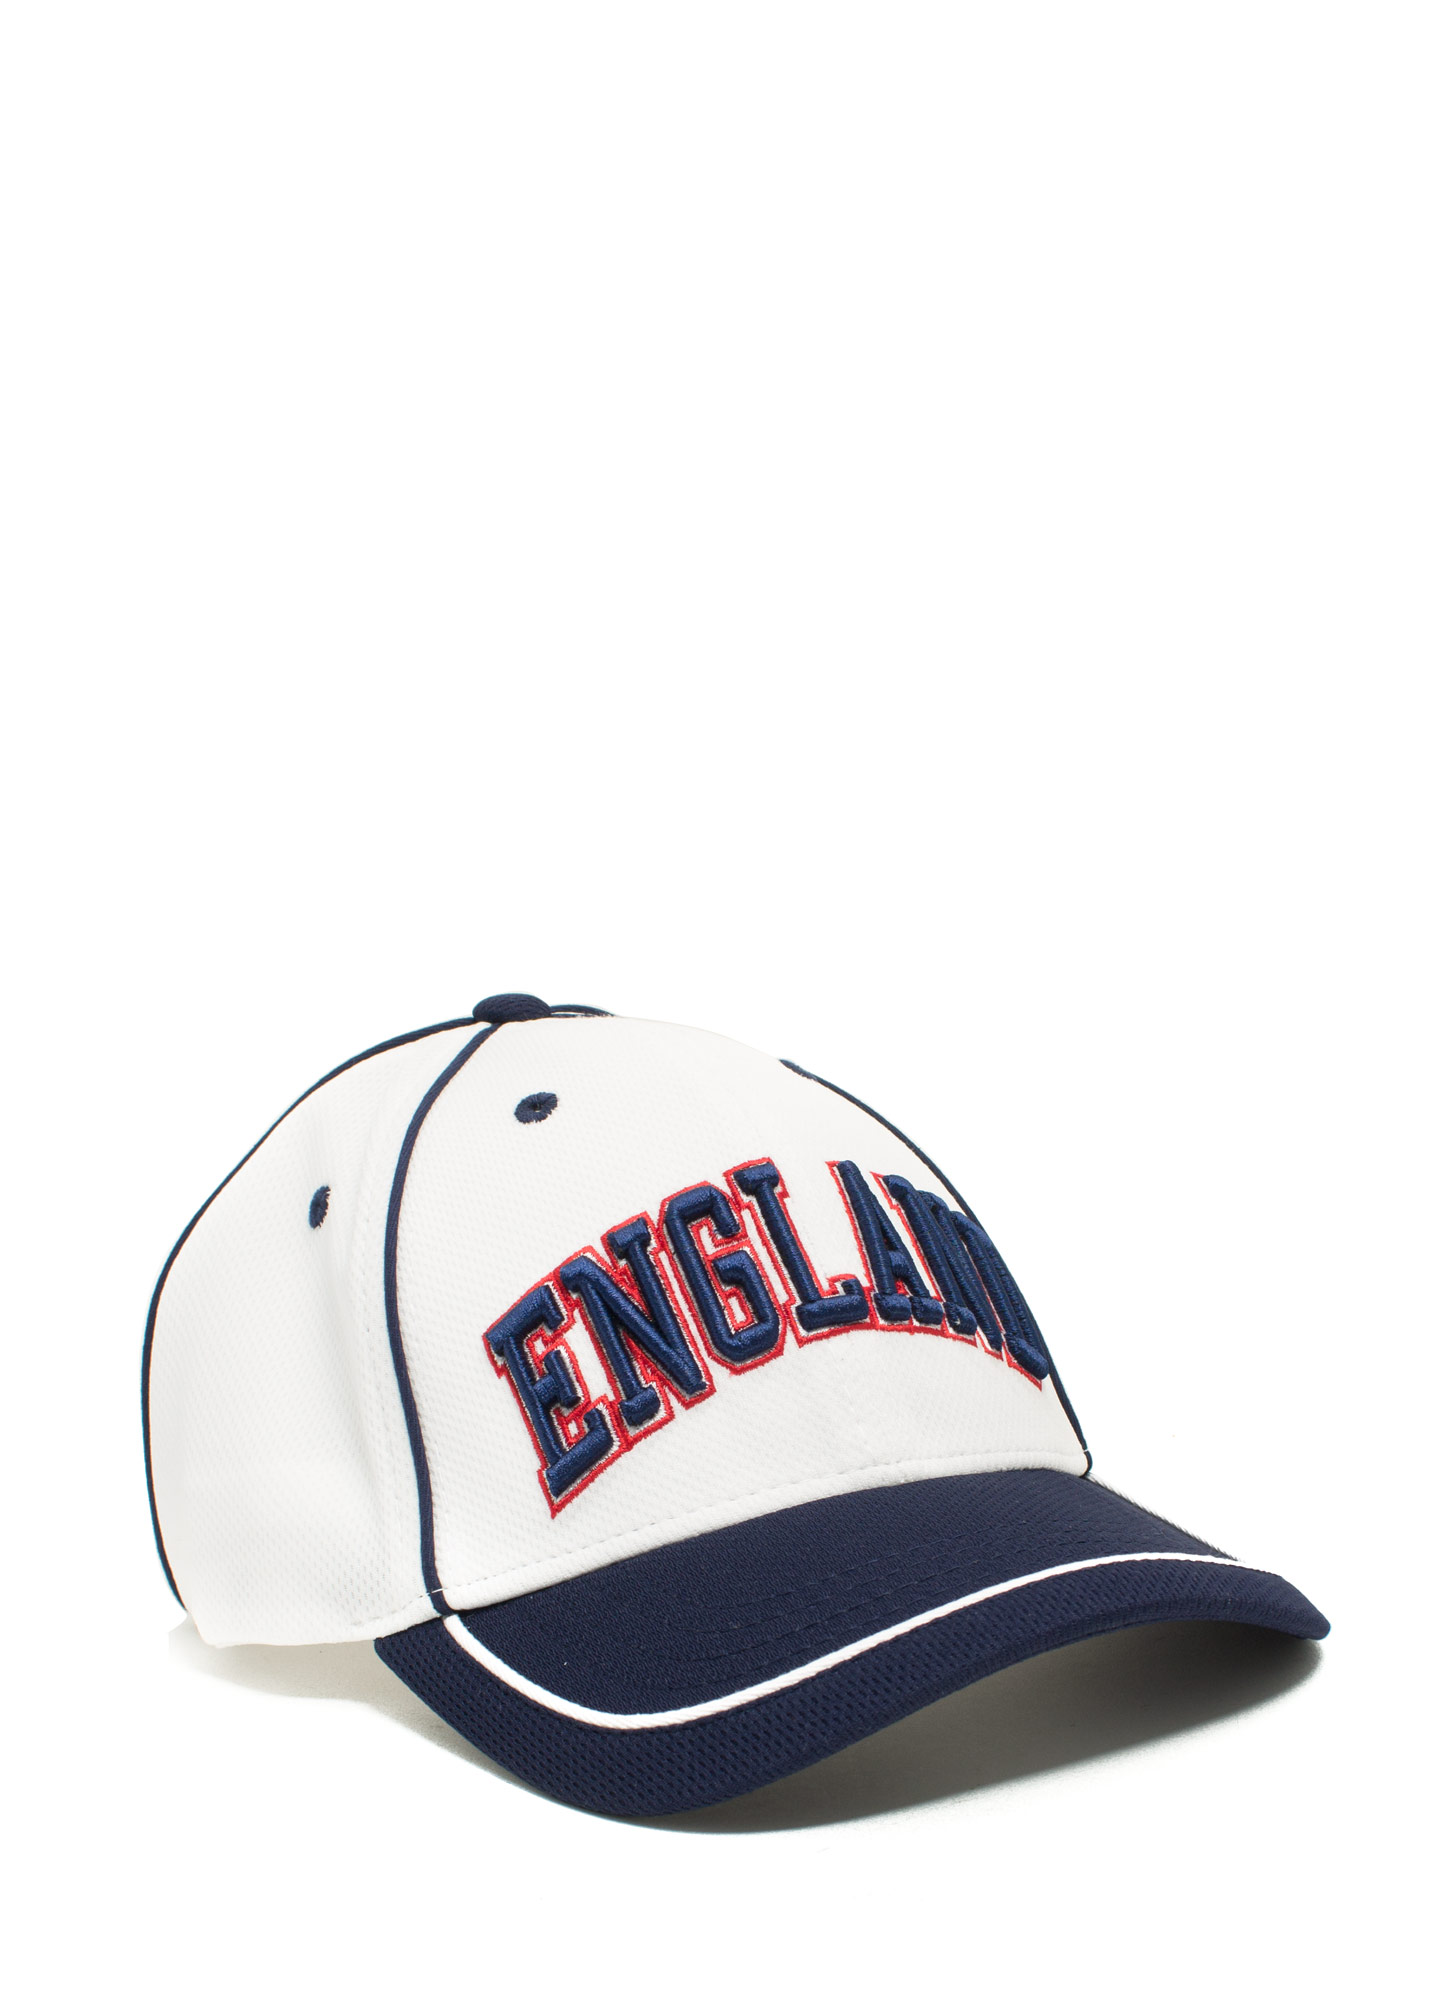 International Country Snapback Hat ENGLAND